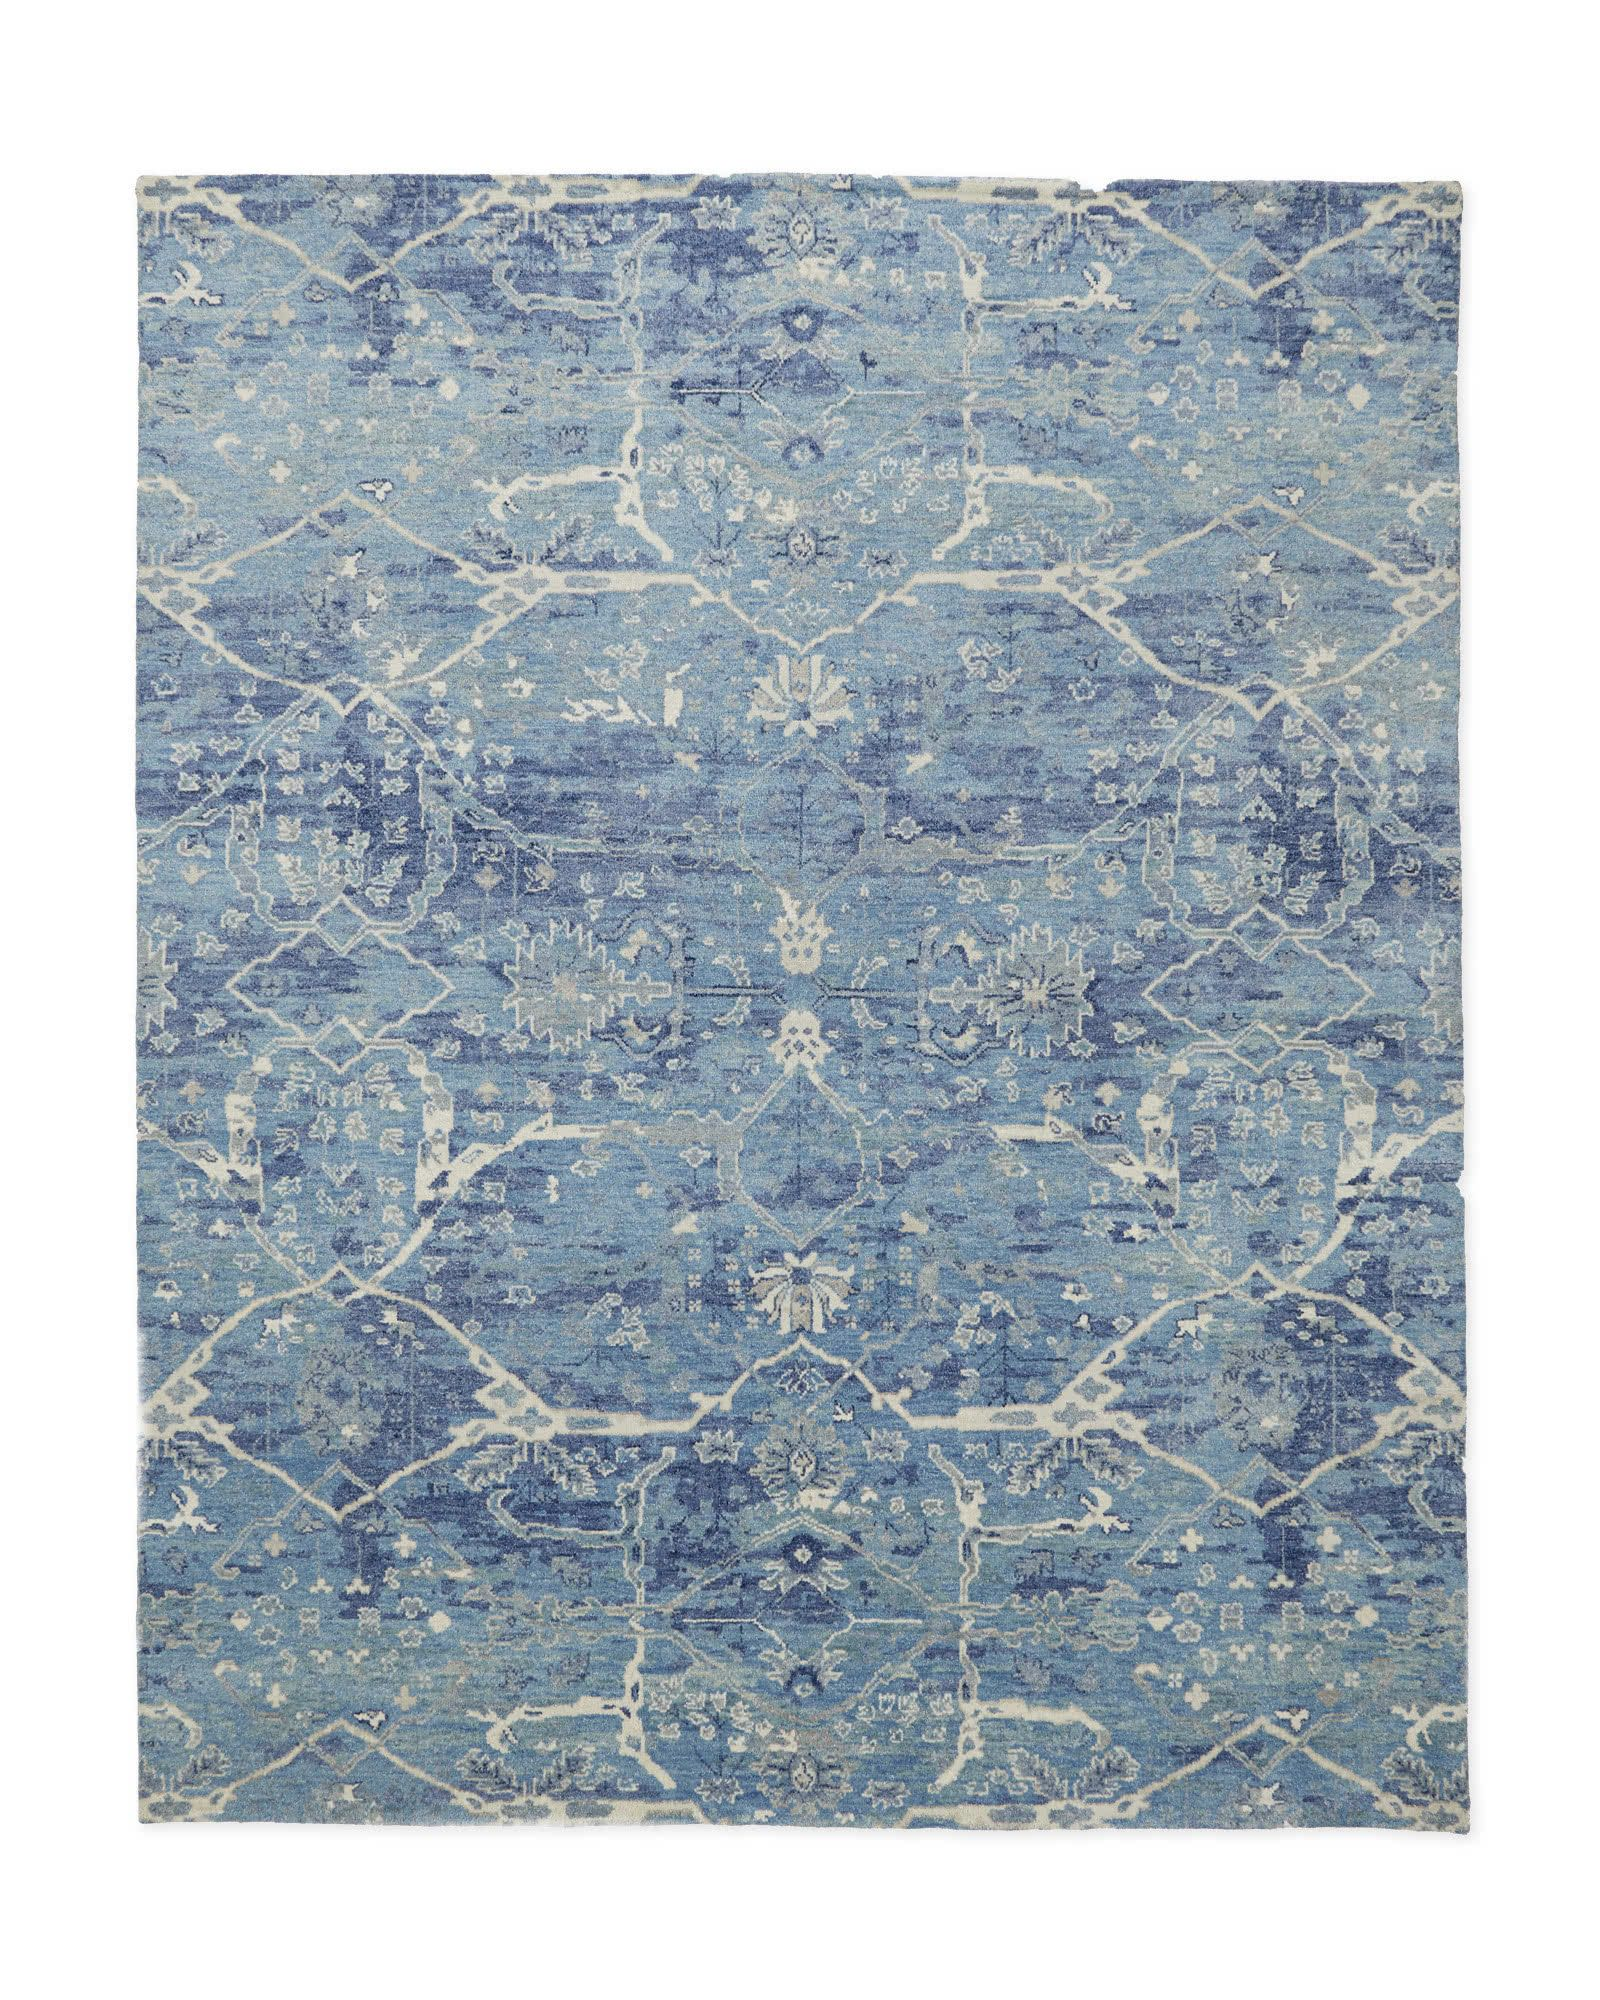 We Re In Love With This Rug S Easy Elegance And Plush Touch No Surprise Since It S A Fabulous Mix Of Soft Hand Knot In 2020 Hand Knotted Rugs Rugs Colorful Interiors